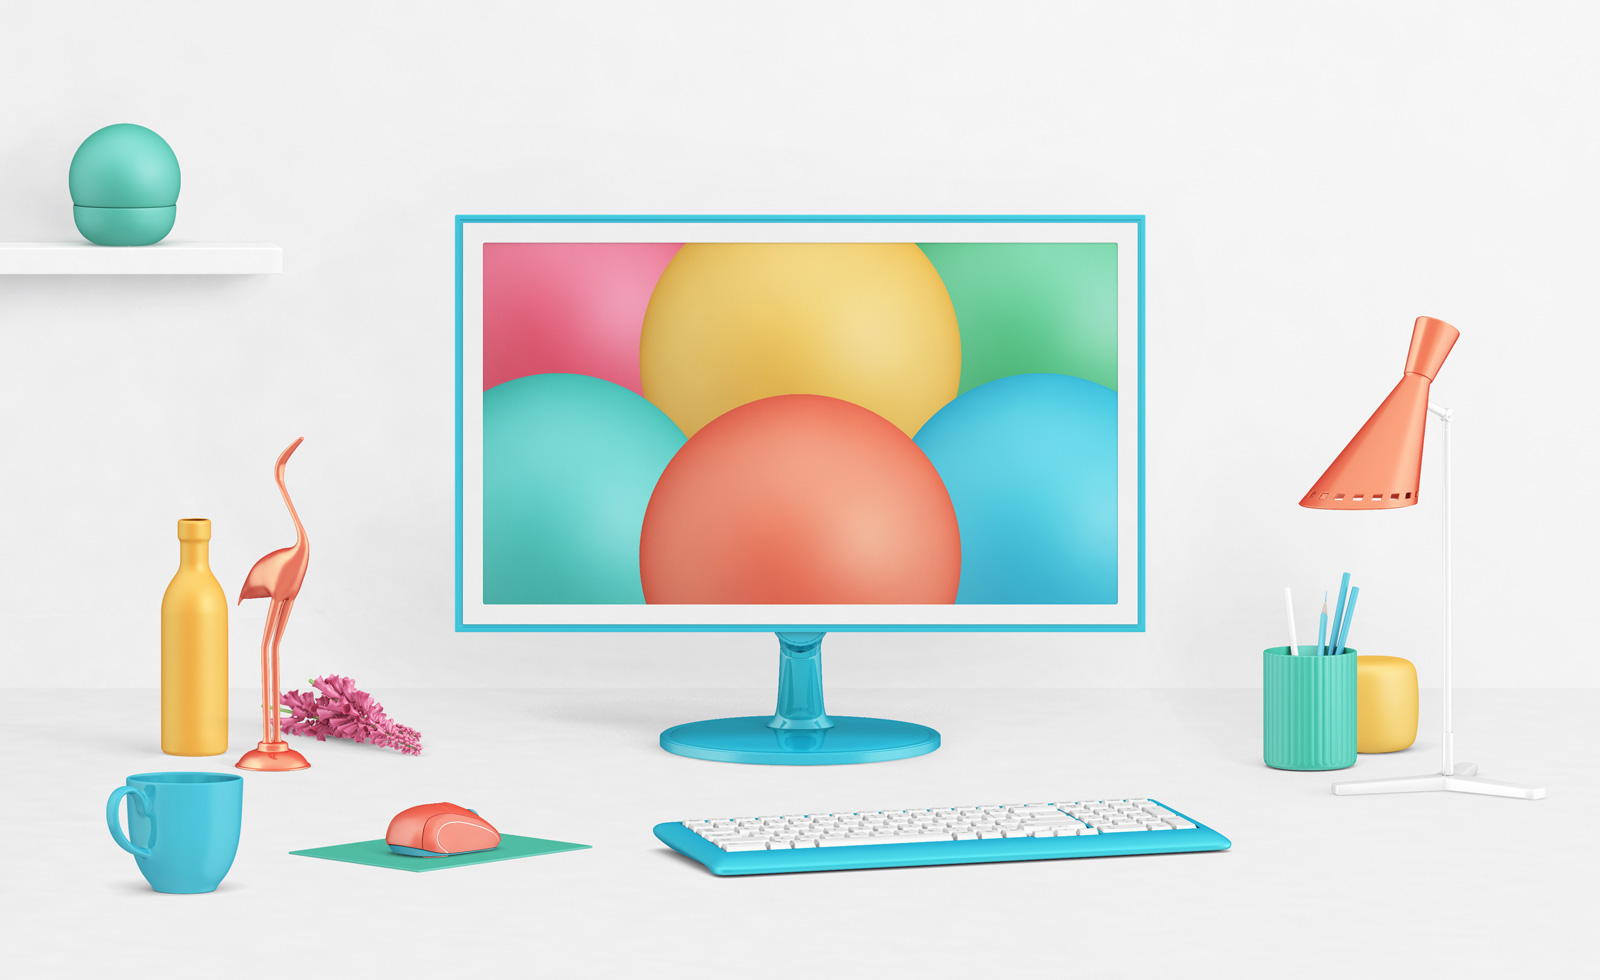 Free-Photorealistic-LCD-Monitor-Mockup-PSD-with-Decor-Items-2